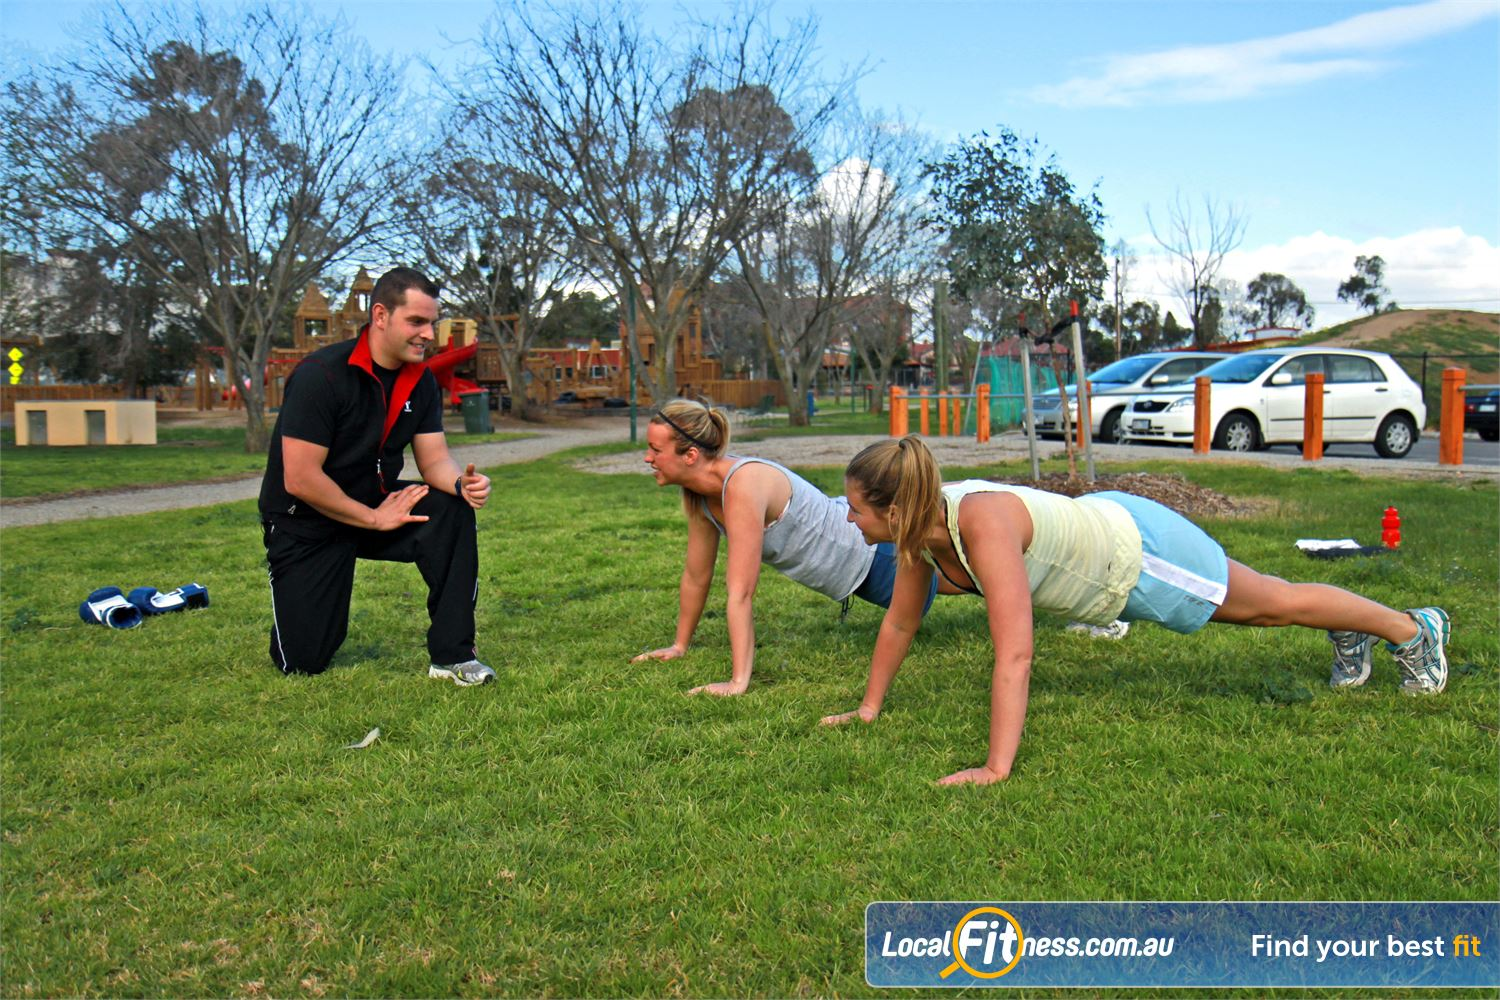 Ascot Vale Leisure Centre Ascot Vale Join our group Ascot Vale personal training programs outdoors in Victory park.